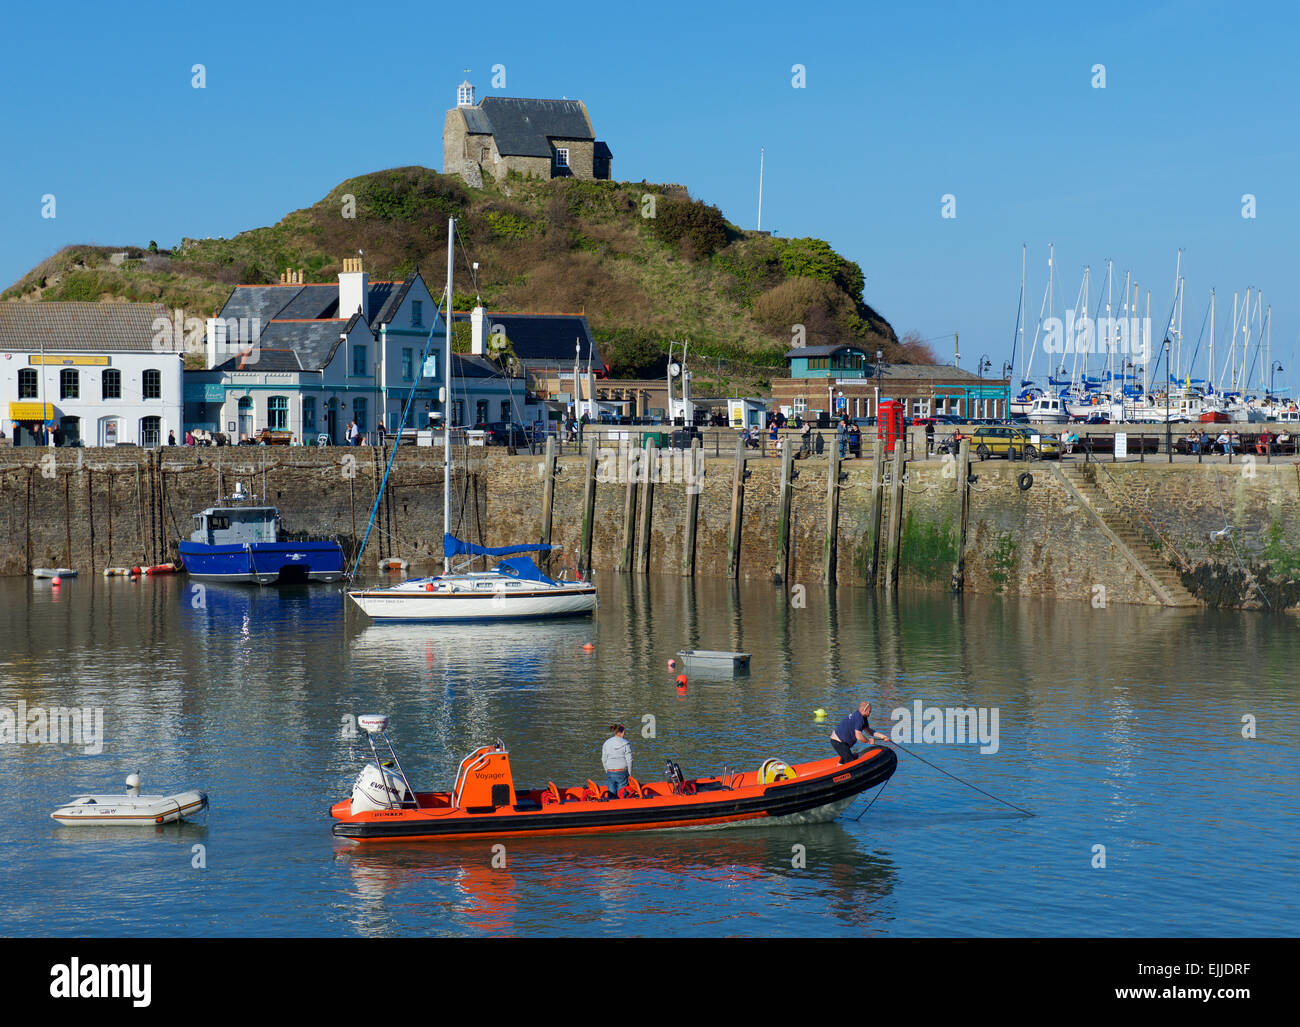 Inflatable boat in the harbour, Ilfracombe, Devon, England UK - Stock Image